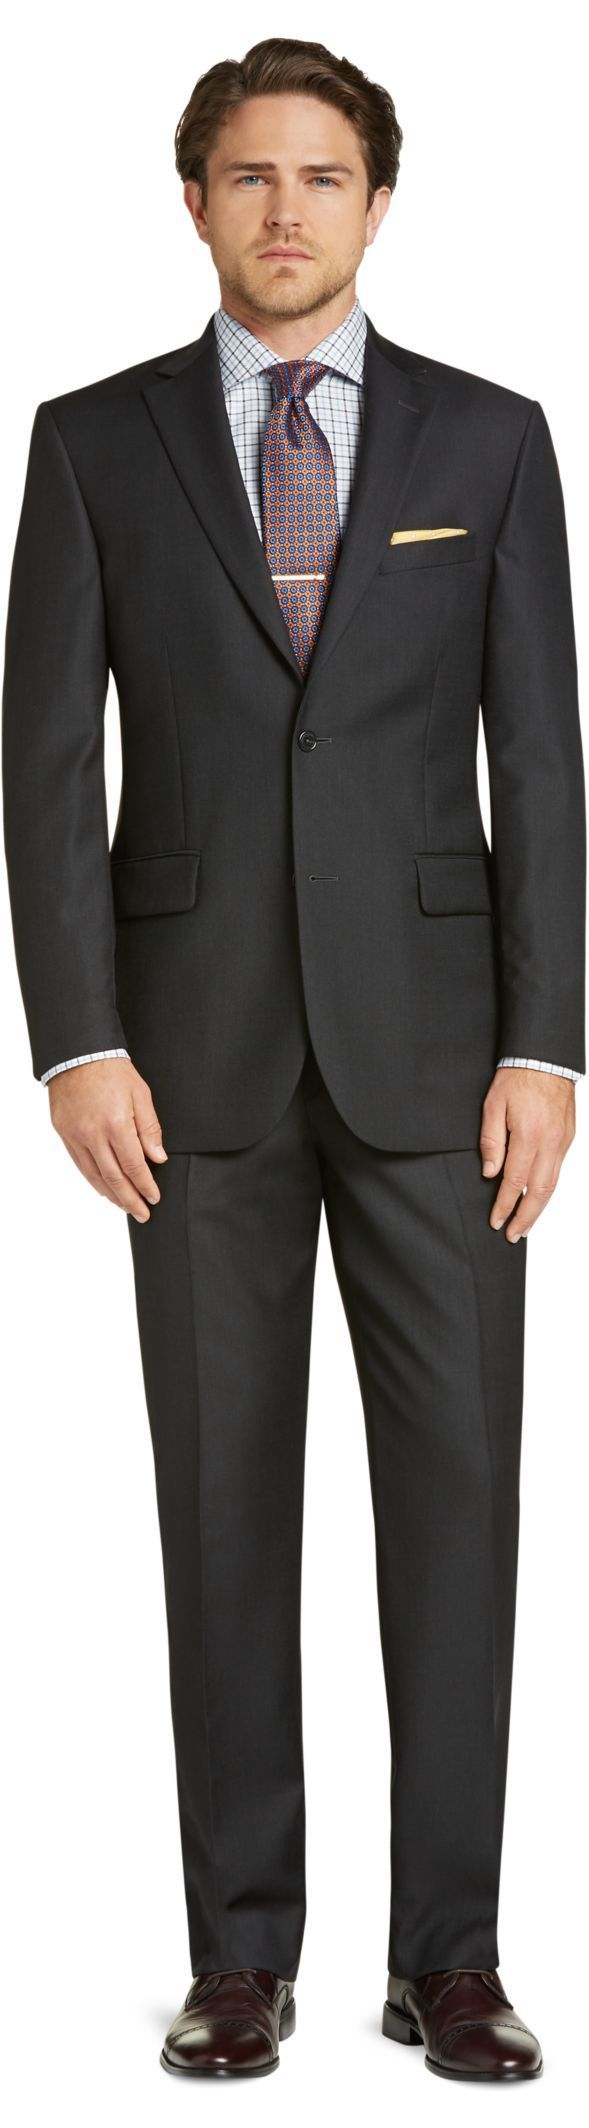 Check this out! Signature Collection Tailored Fit Solid Pattern Suit from JoS. A. Bank Clothiers. #JosABank